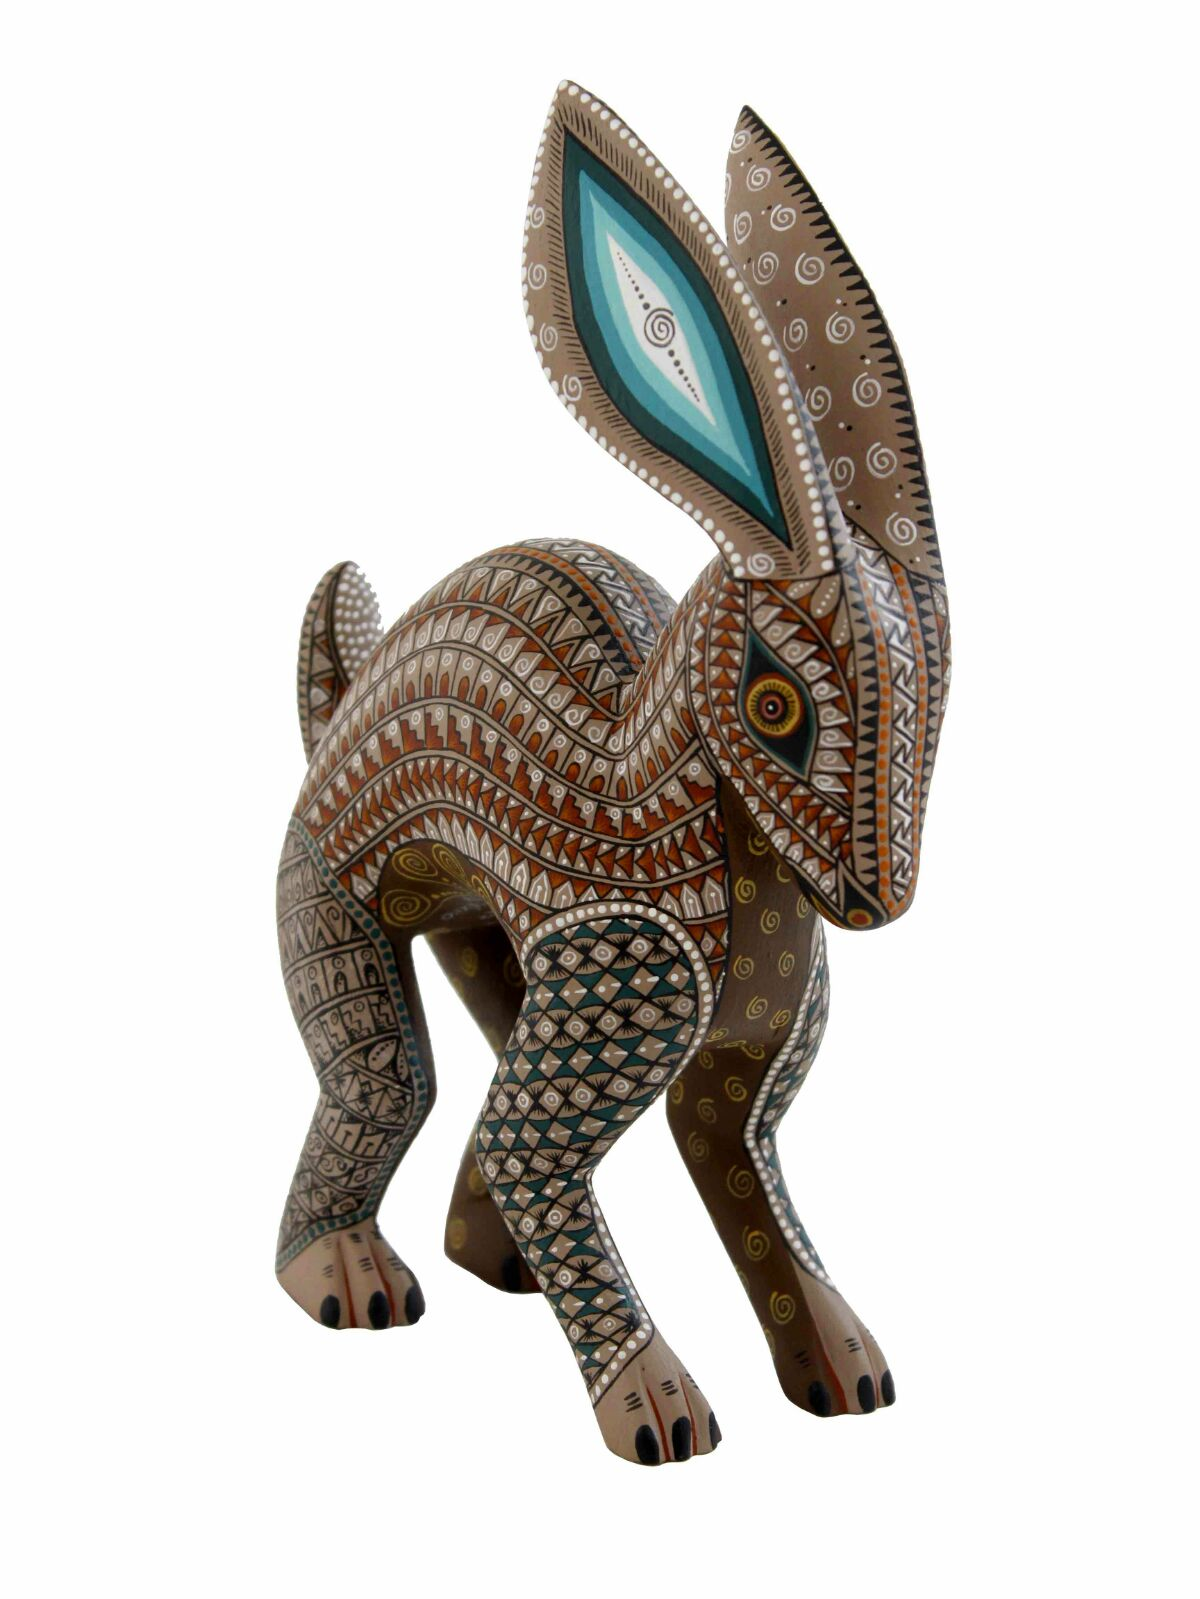 Jacobo & Maria Angeles Original Alebrijes Conejo #47, rabbit